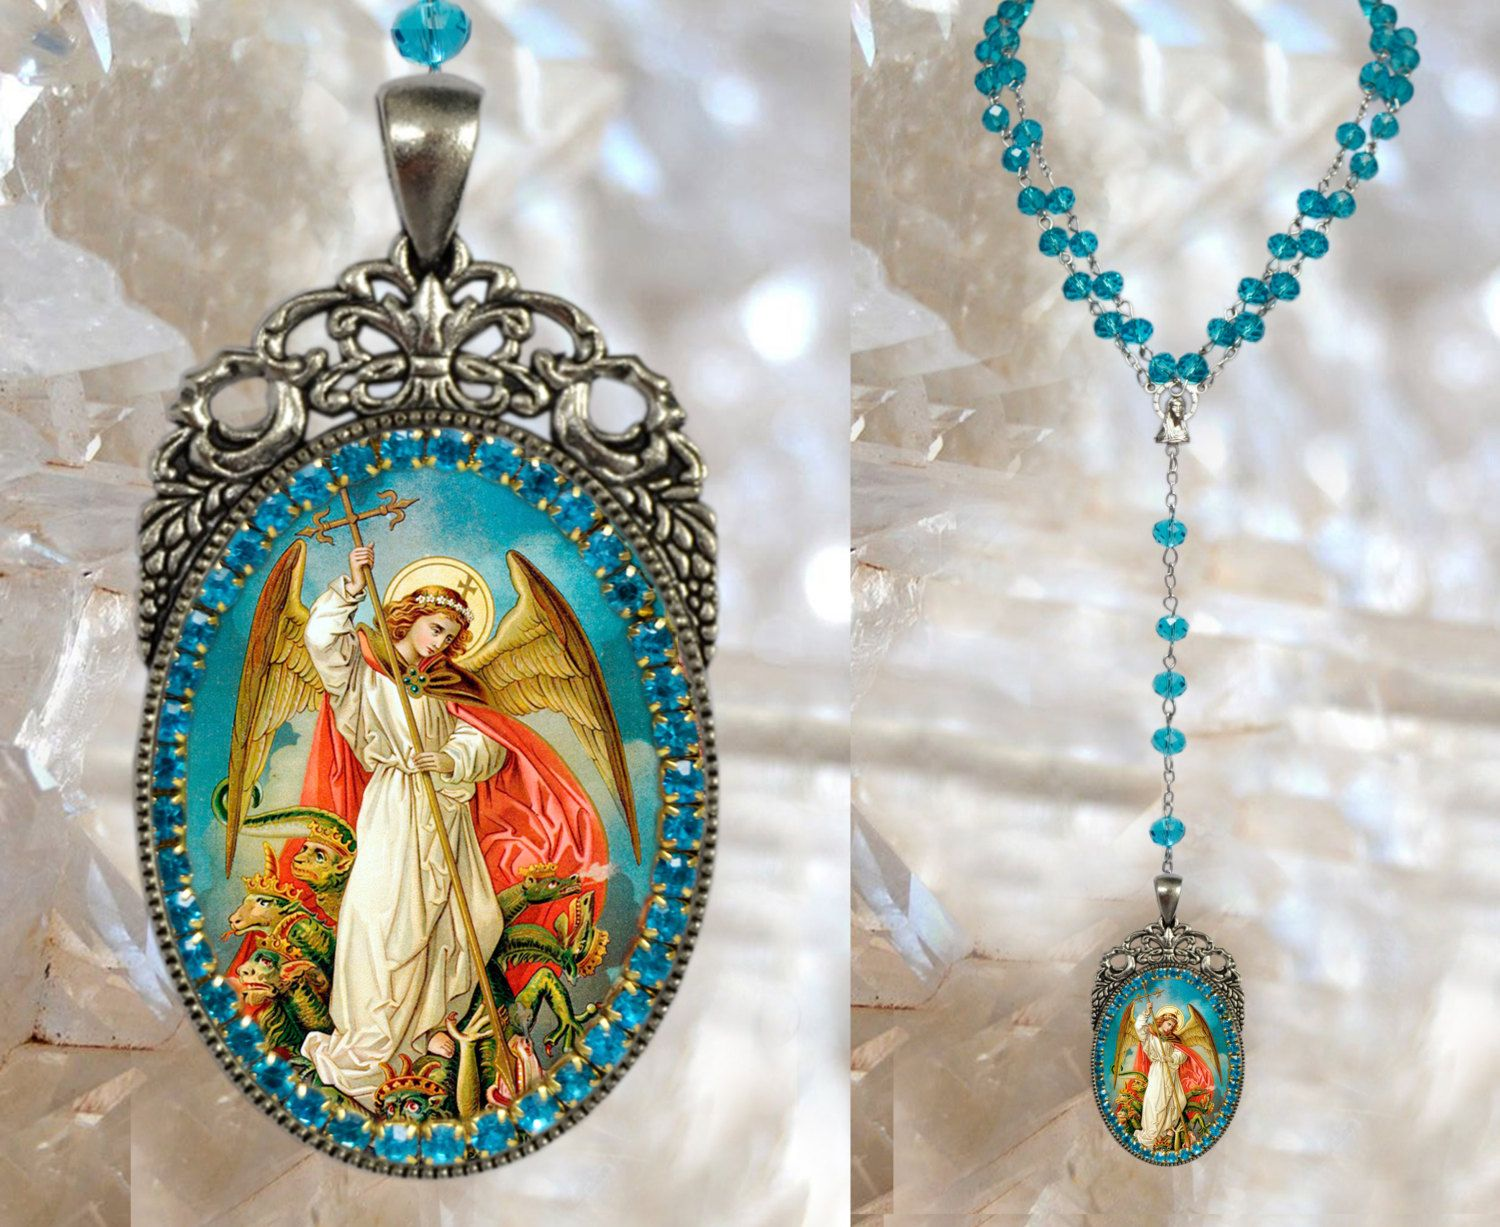 Rosary of St. Michael Archangel Handmade Catholic Christian Religious Rosaries Jewelry Medal Pendant Arcanjo Miguel #rosaryjewelry